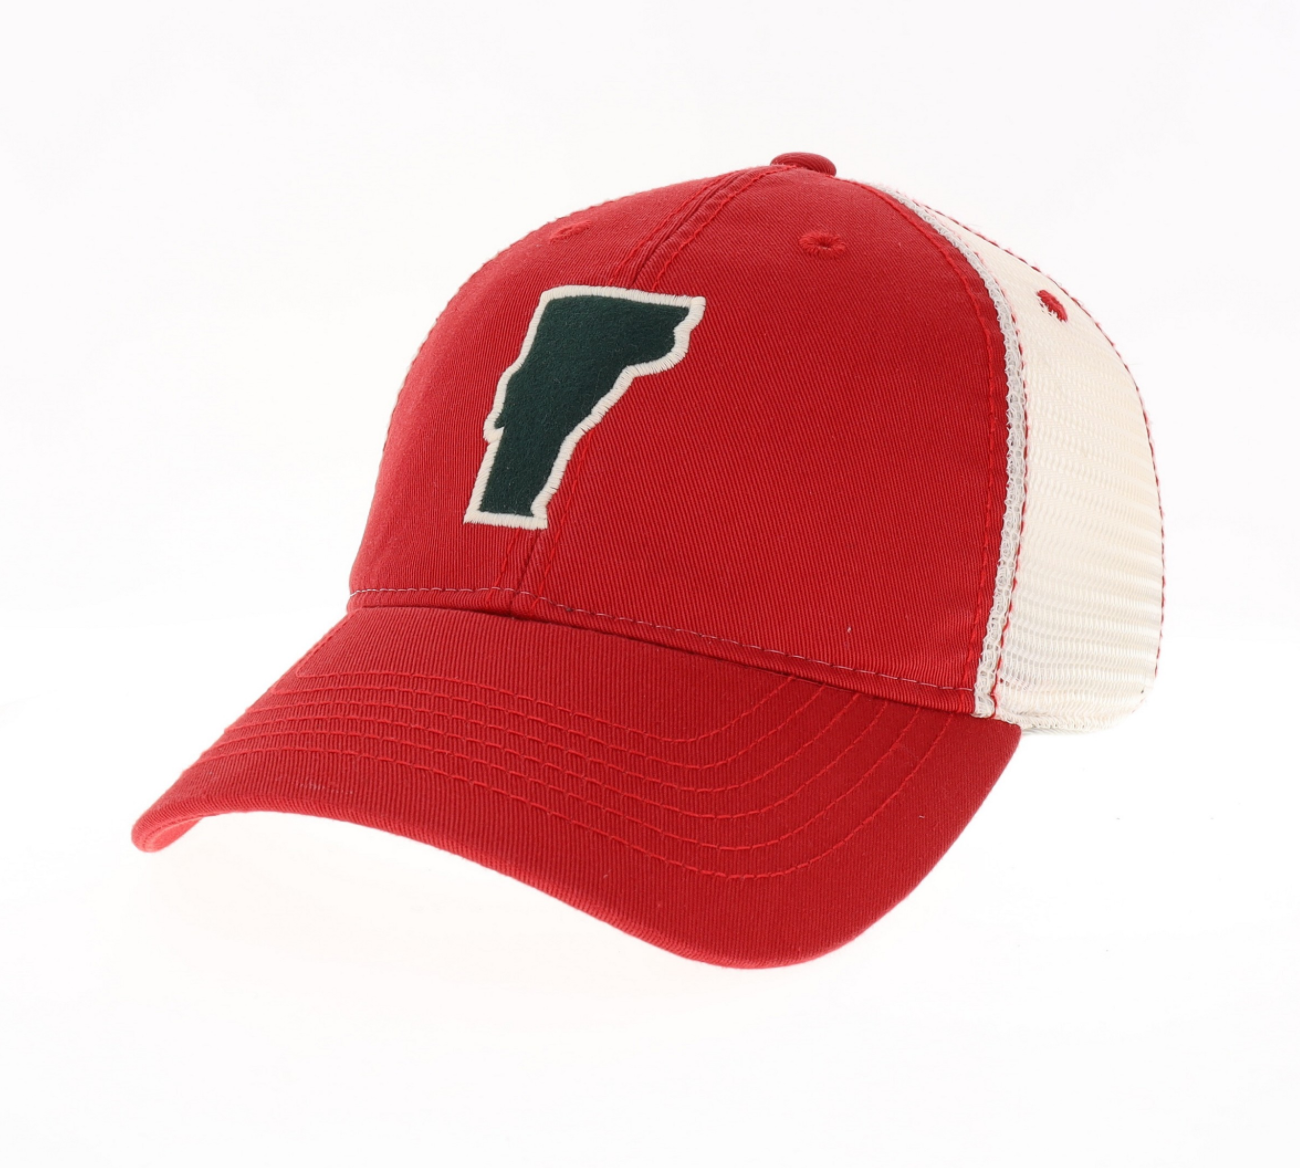 Vermonter Trucker Hat (red)